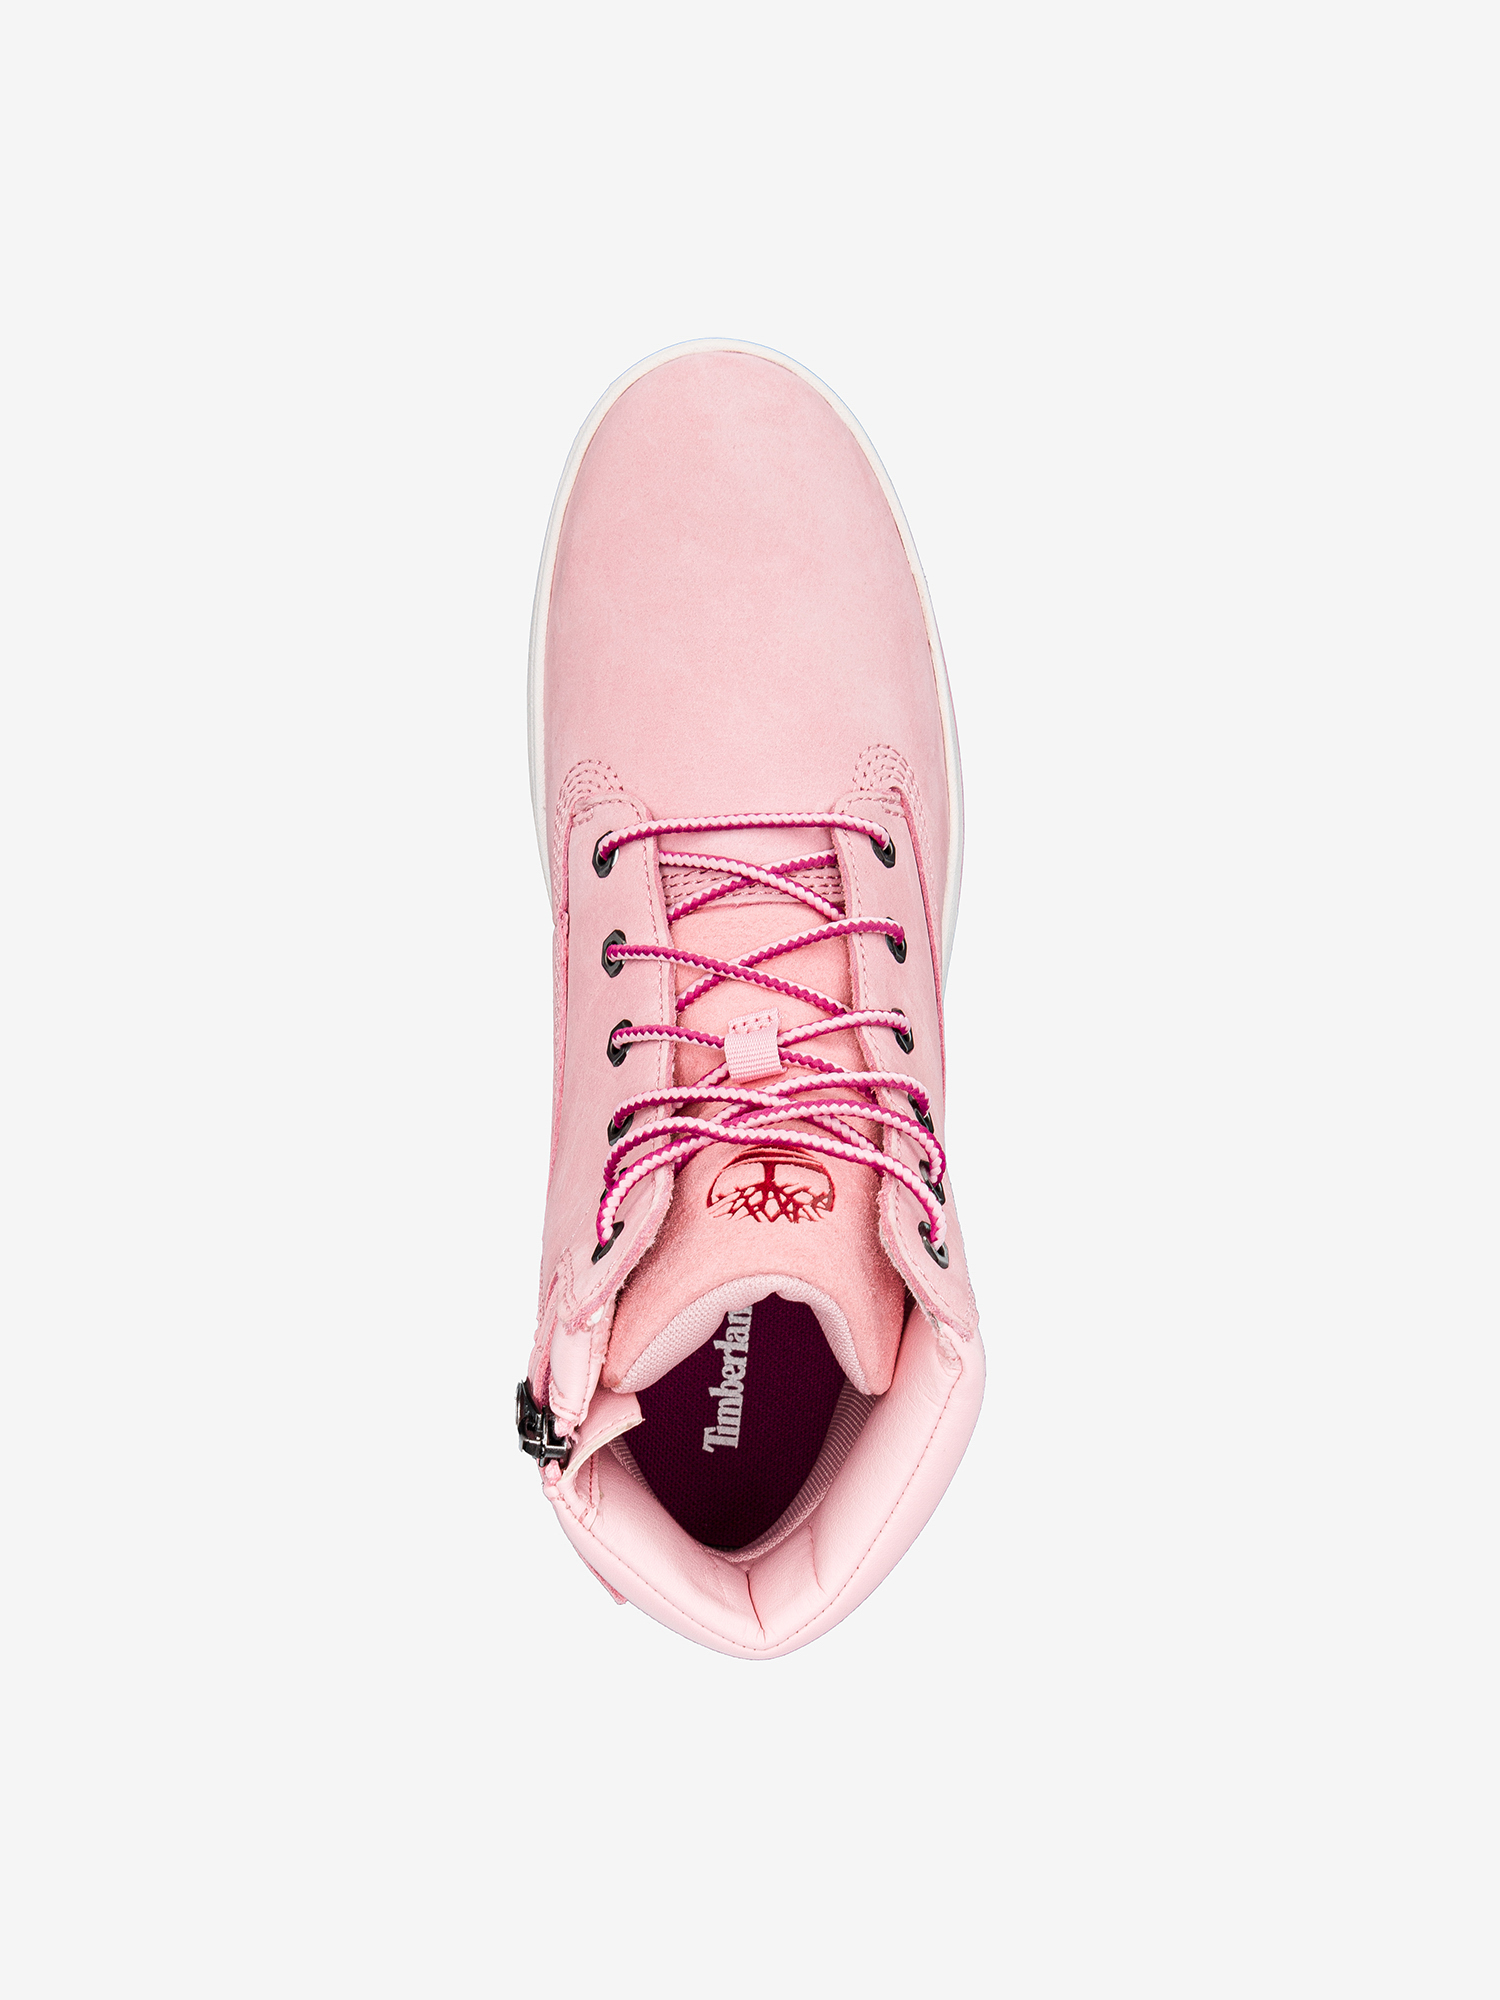 Boty Timberland Davis Square 6 Inch Prism Pink (4)